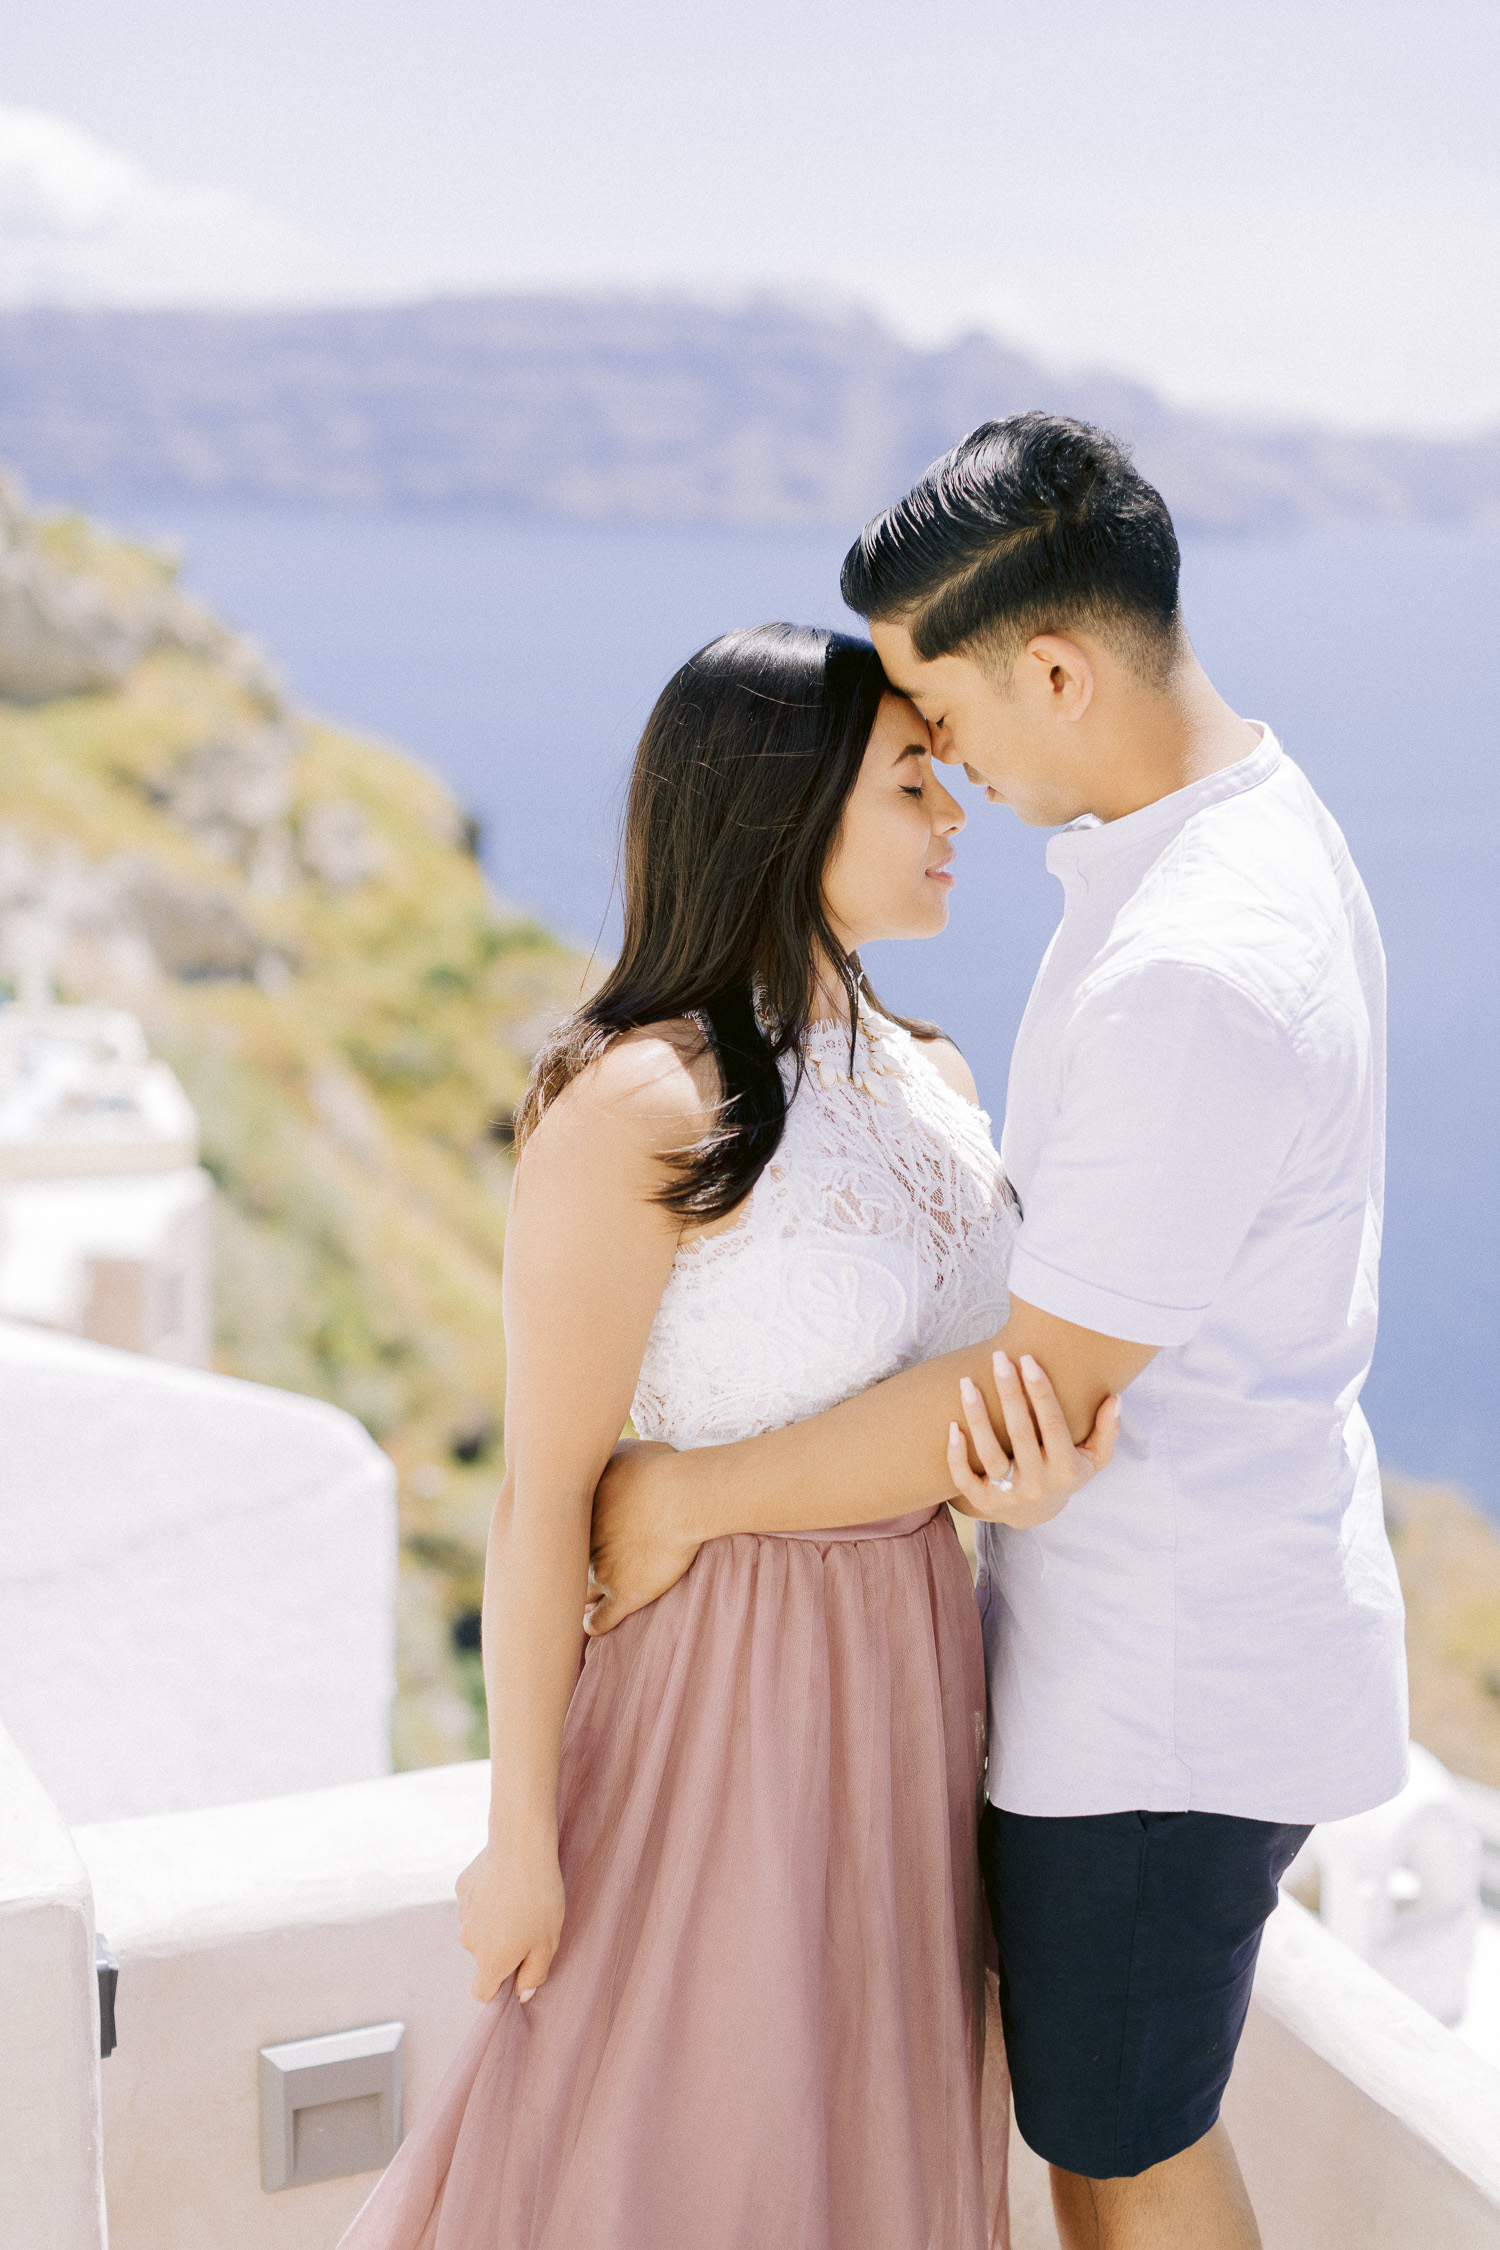 Tender moment between a couple with a backdrop of Santorini